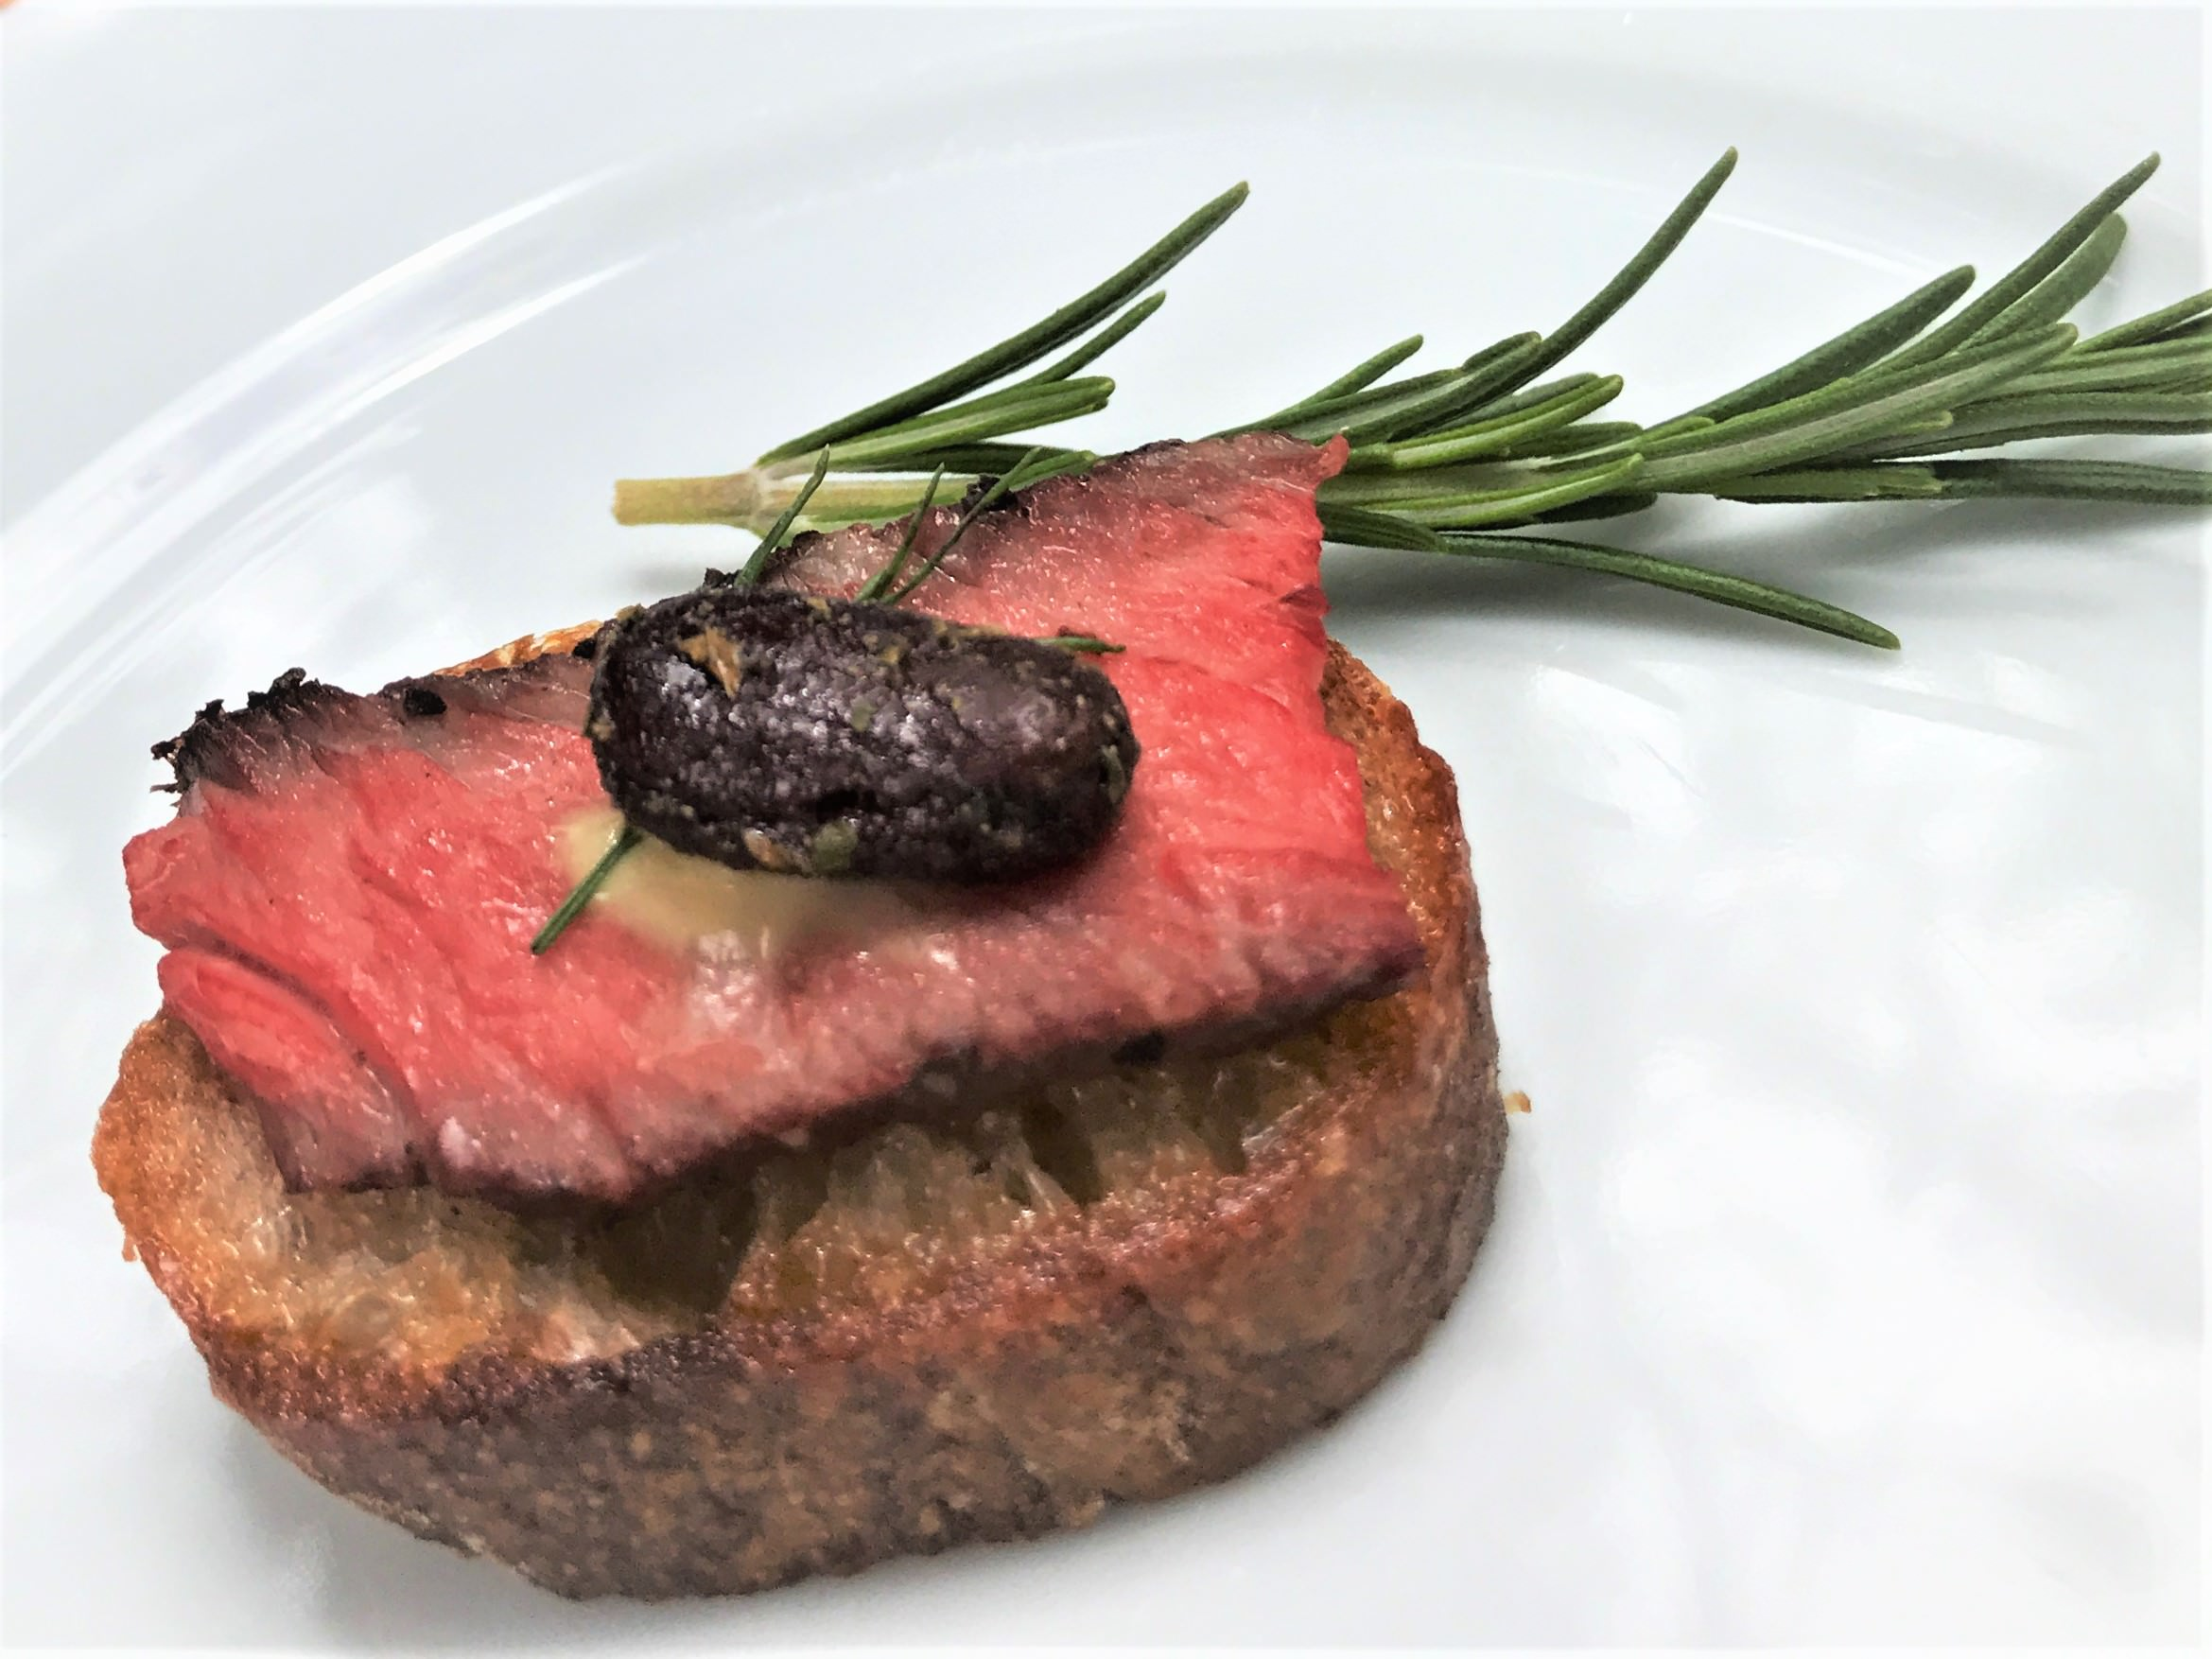 good-king-gourmet-snacking-cacao-joy-mint-rosemary-beef-ribeye-crostini-appetizer-pairing